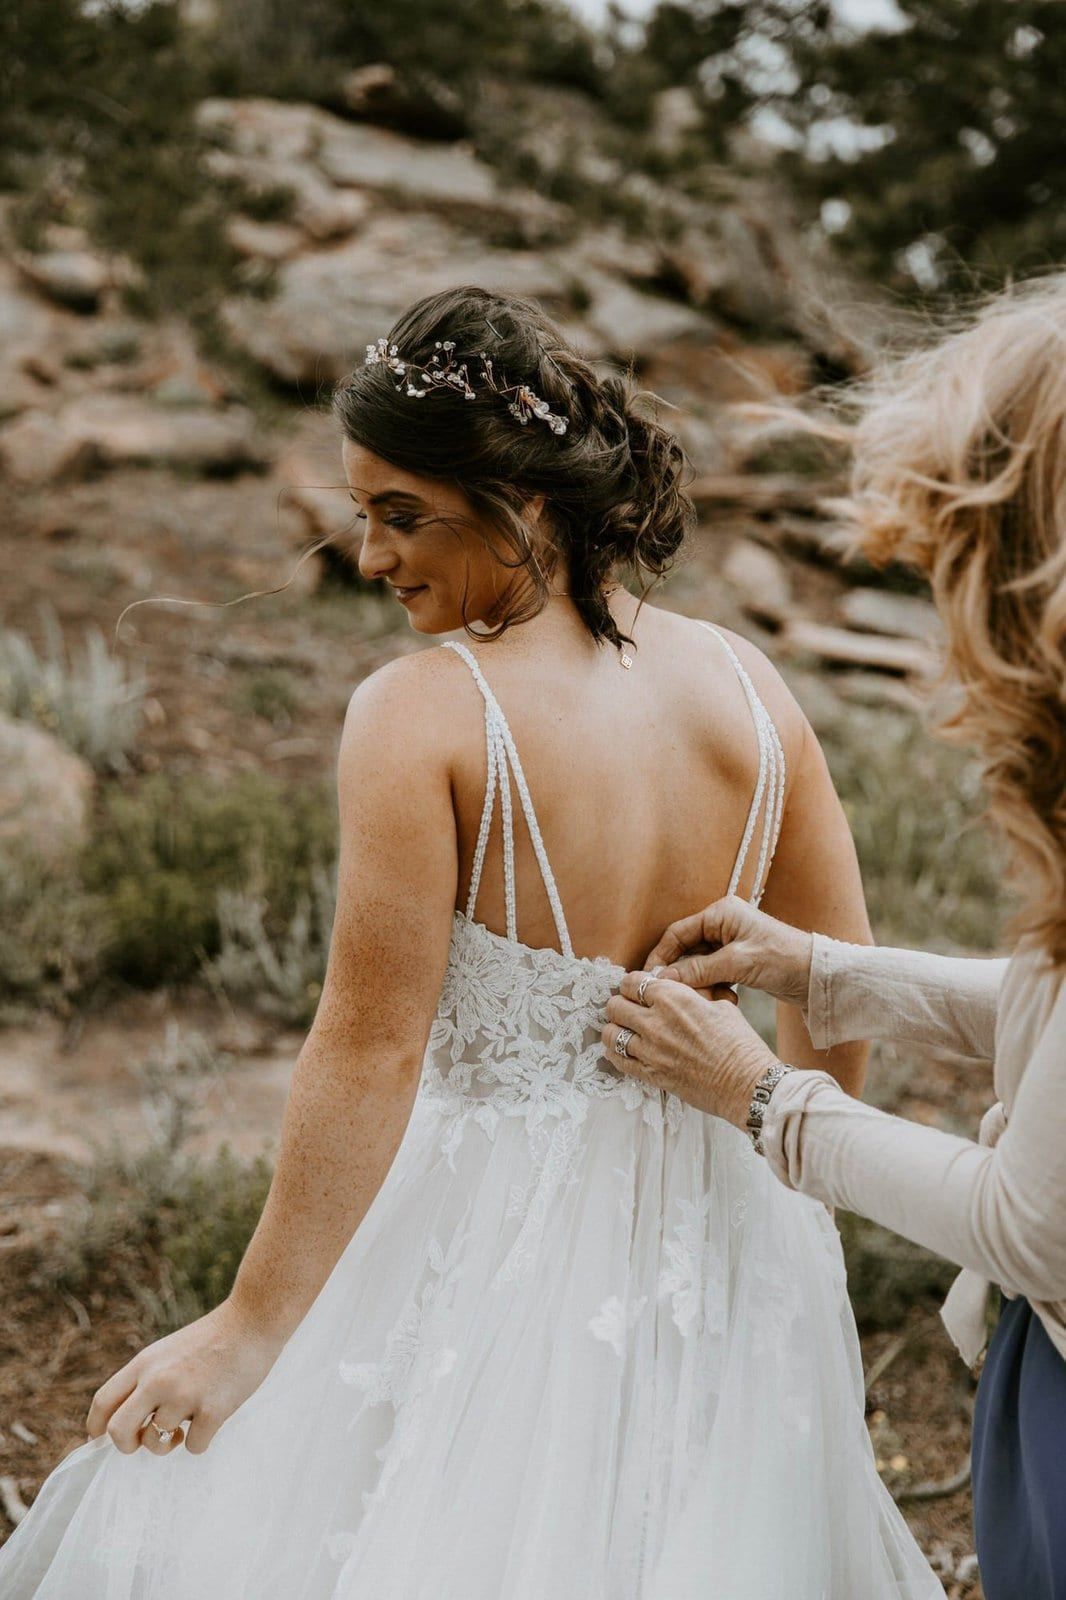 bride gets her dress buttoned up.